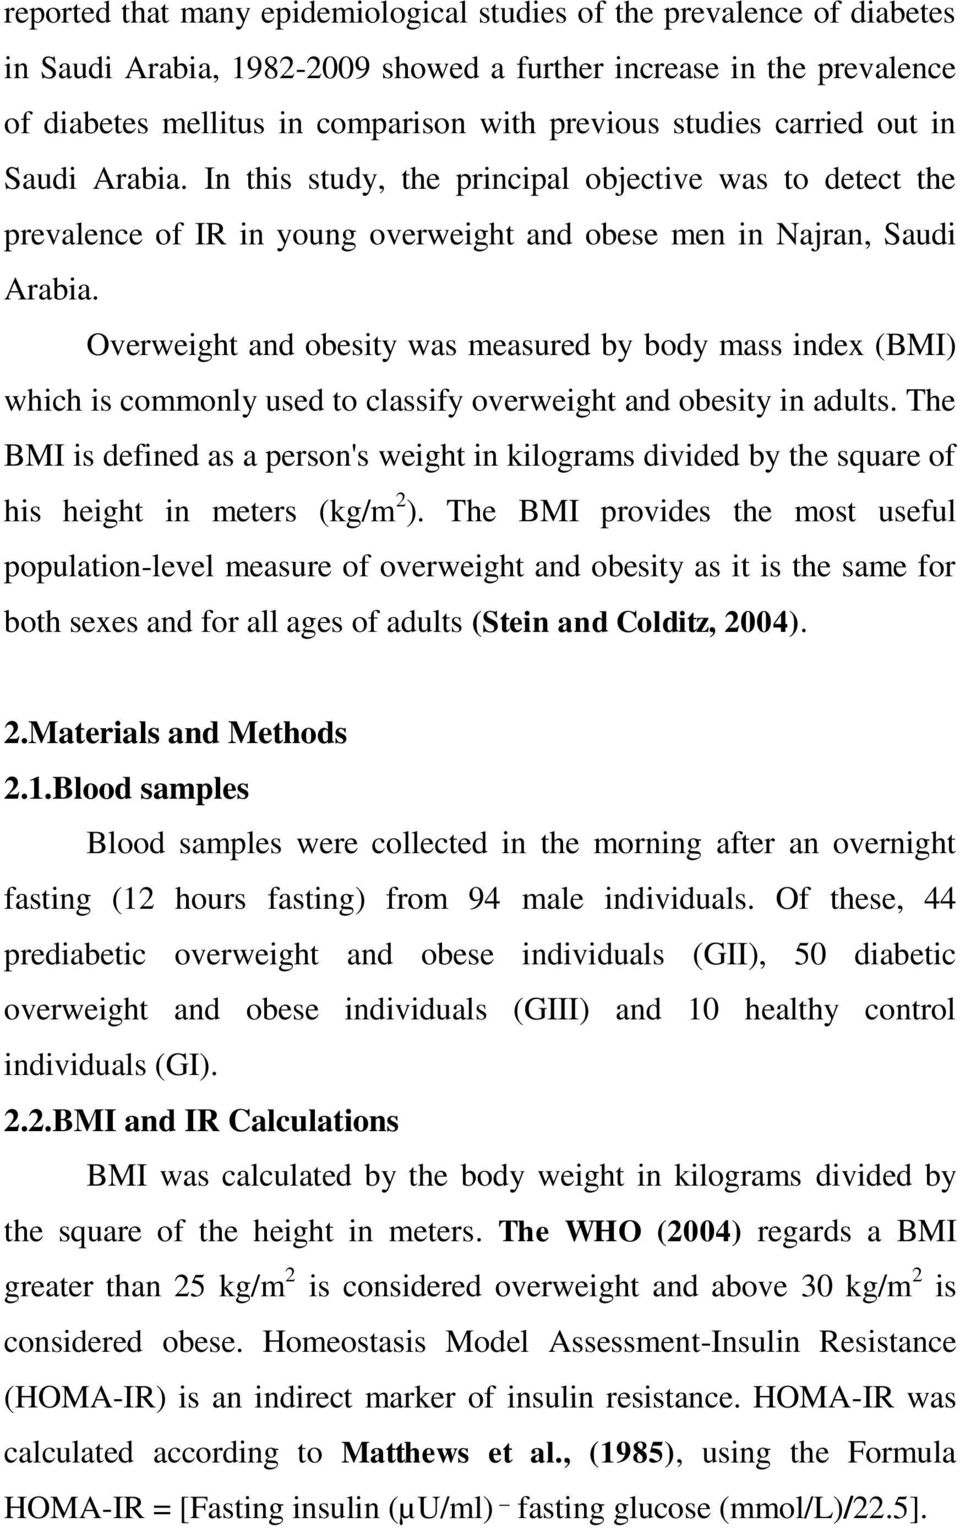 Overweight and obesity was measured by body mass index (BMI) which is commonly used to classify overweight and obesity in adults.